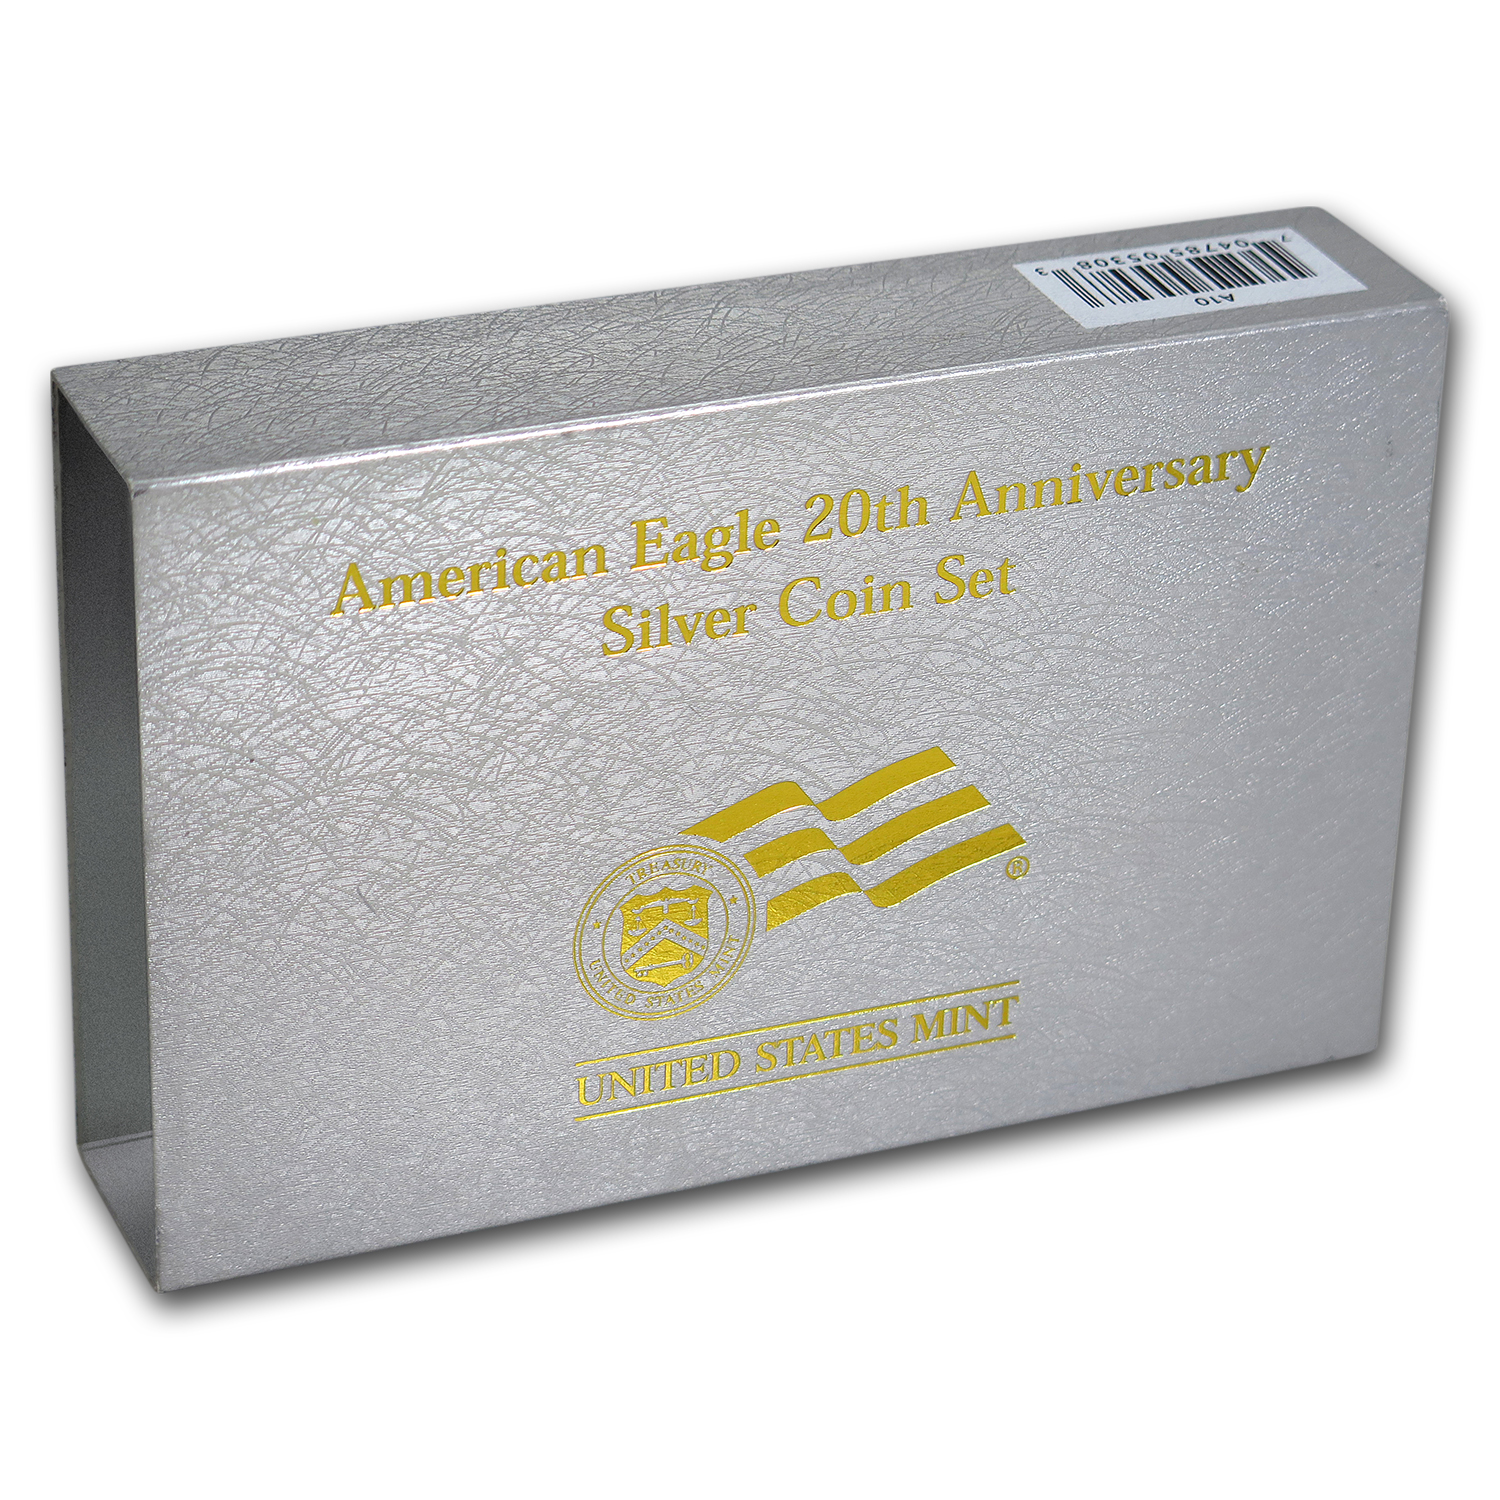 OGP Box & COA - 2006 20th Anniversary 3-Coin Silver Eagle Set